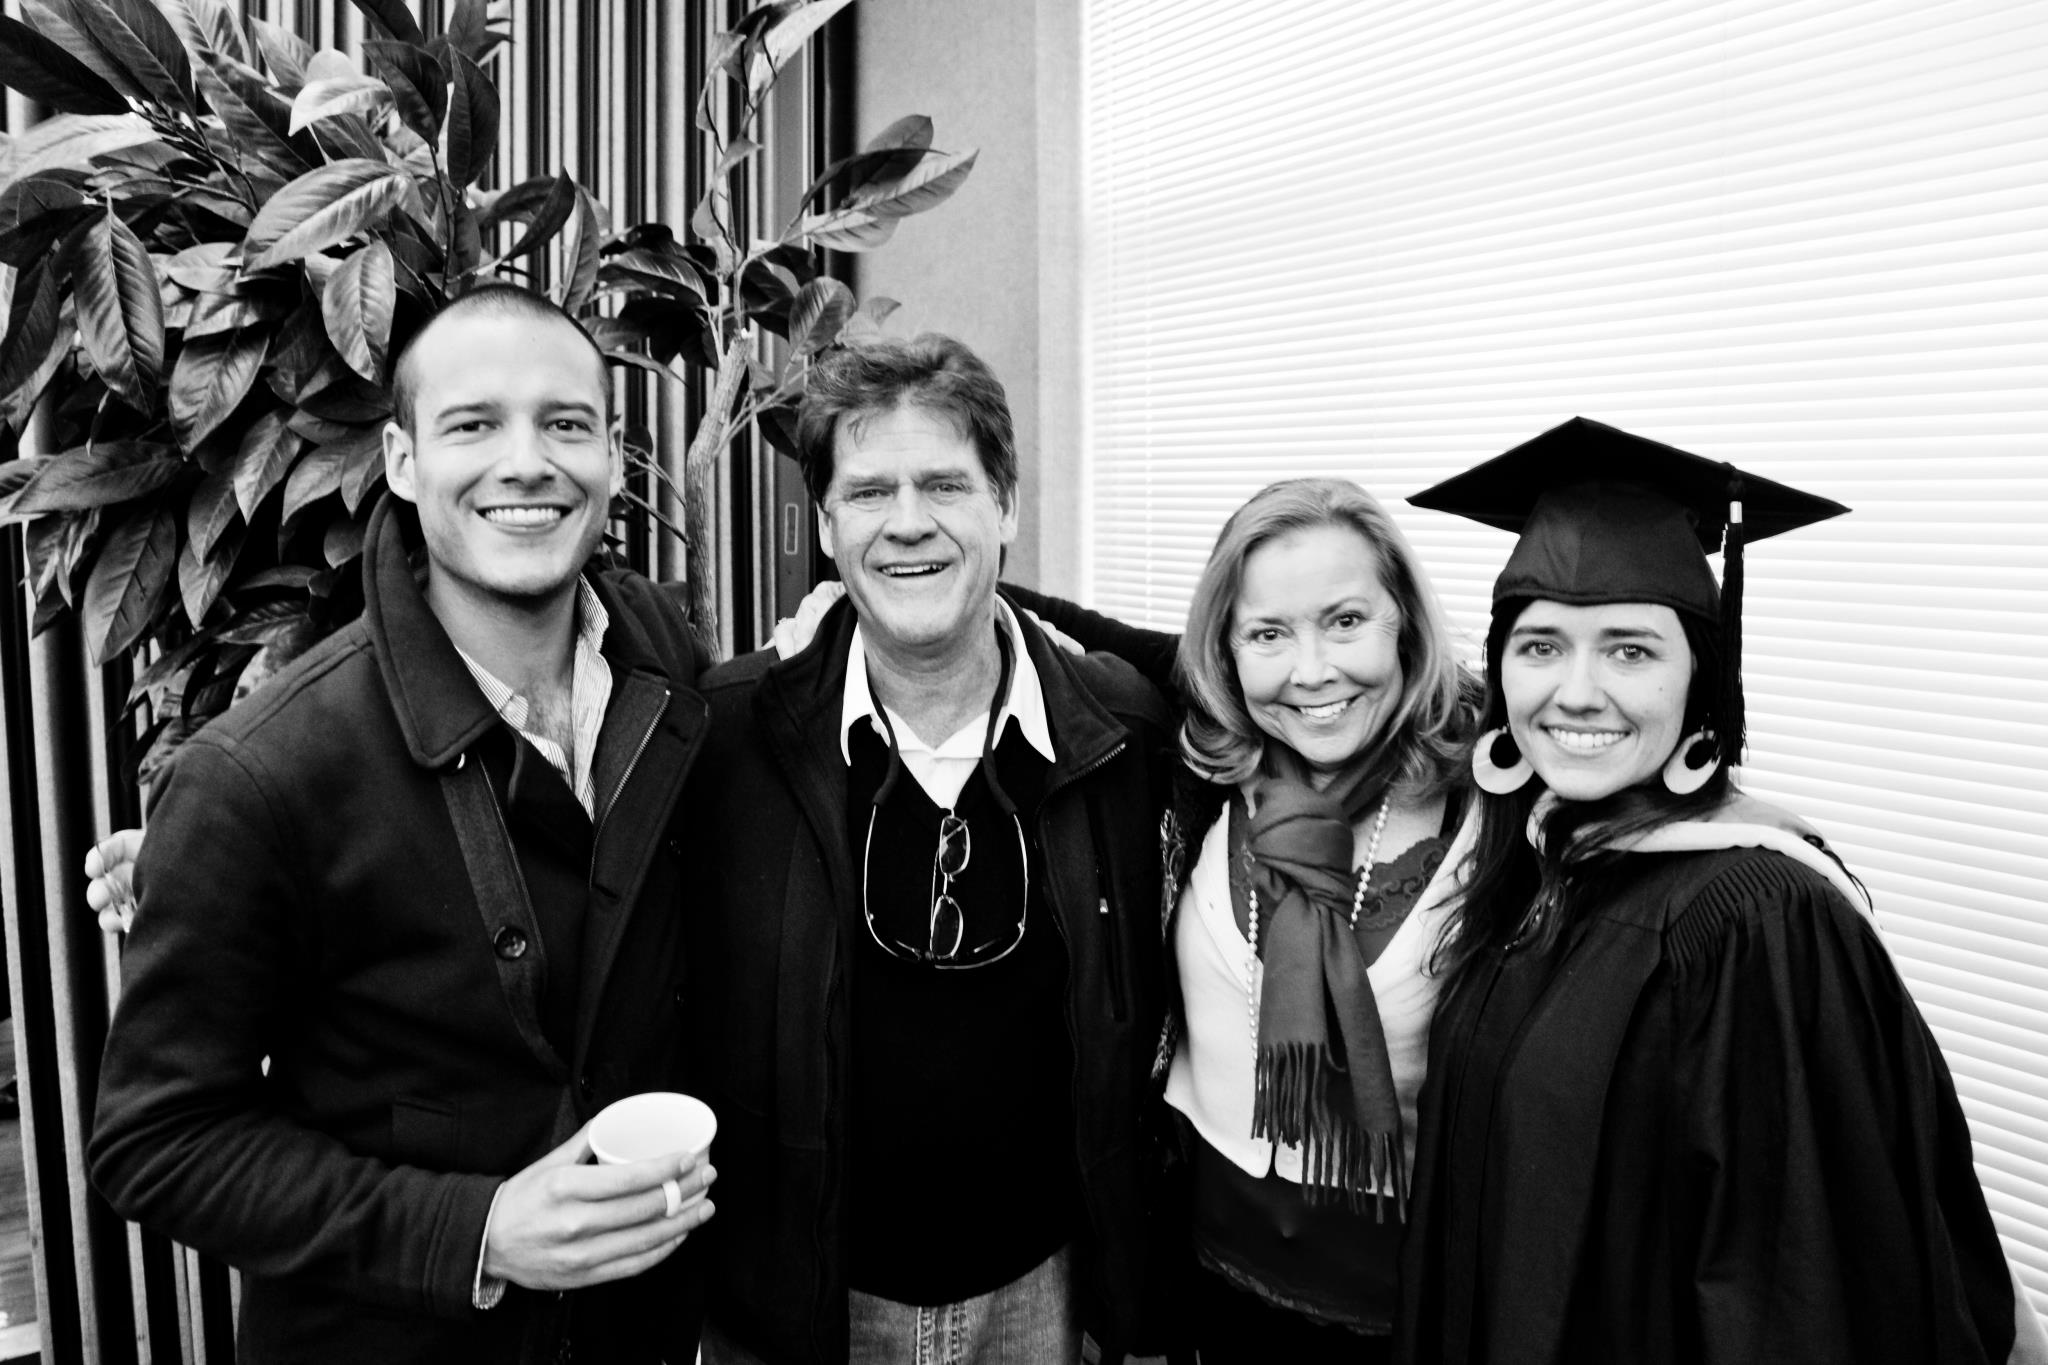 This is me with my family at Colorado State University for my MSW Graduation.